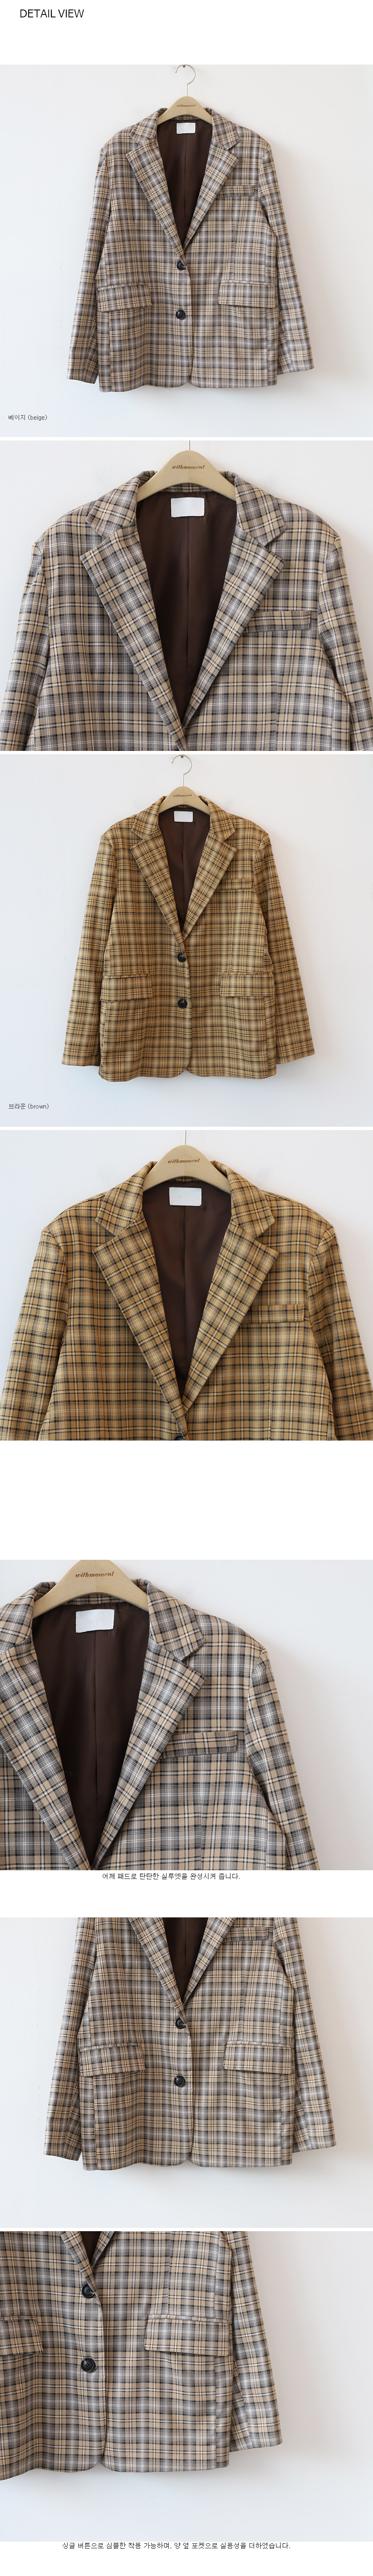 Rosh Check Jacket